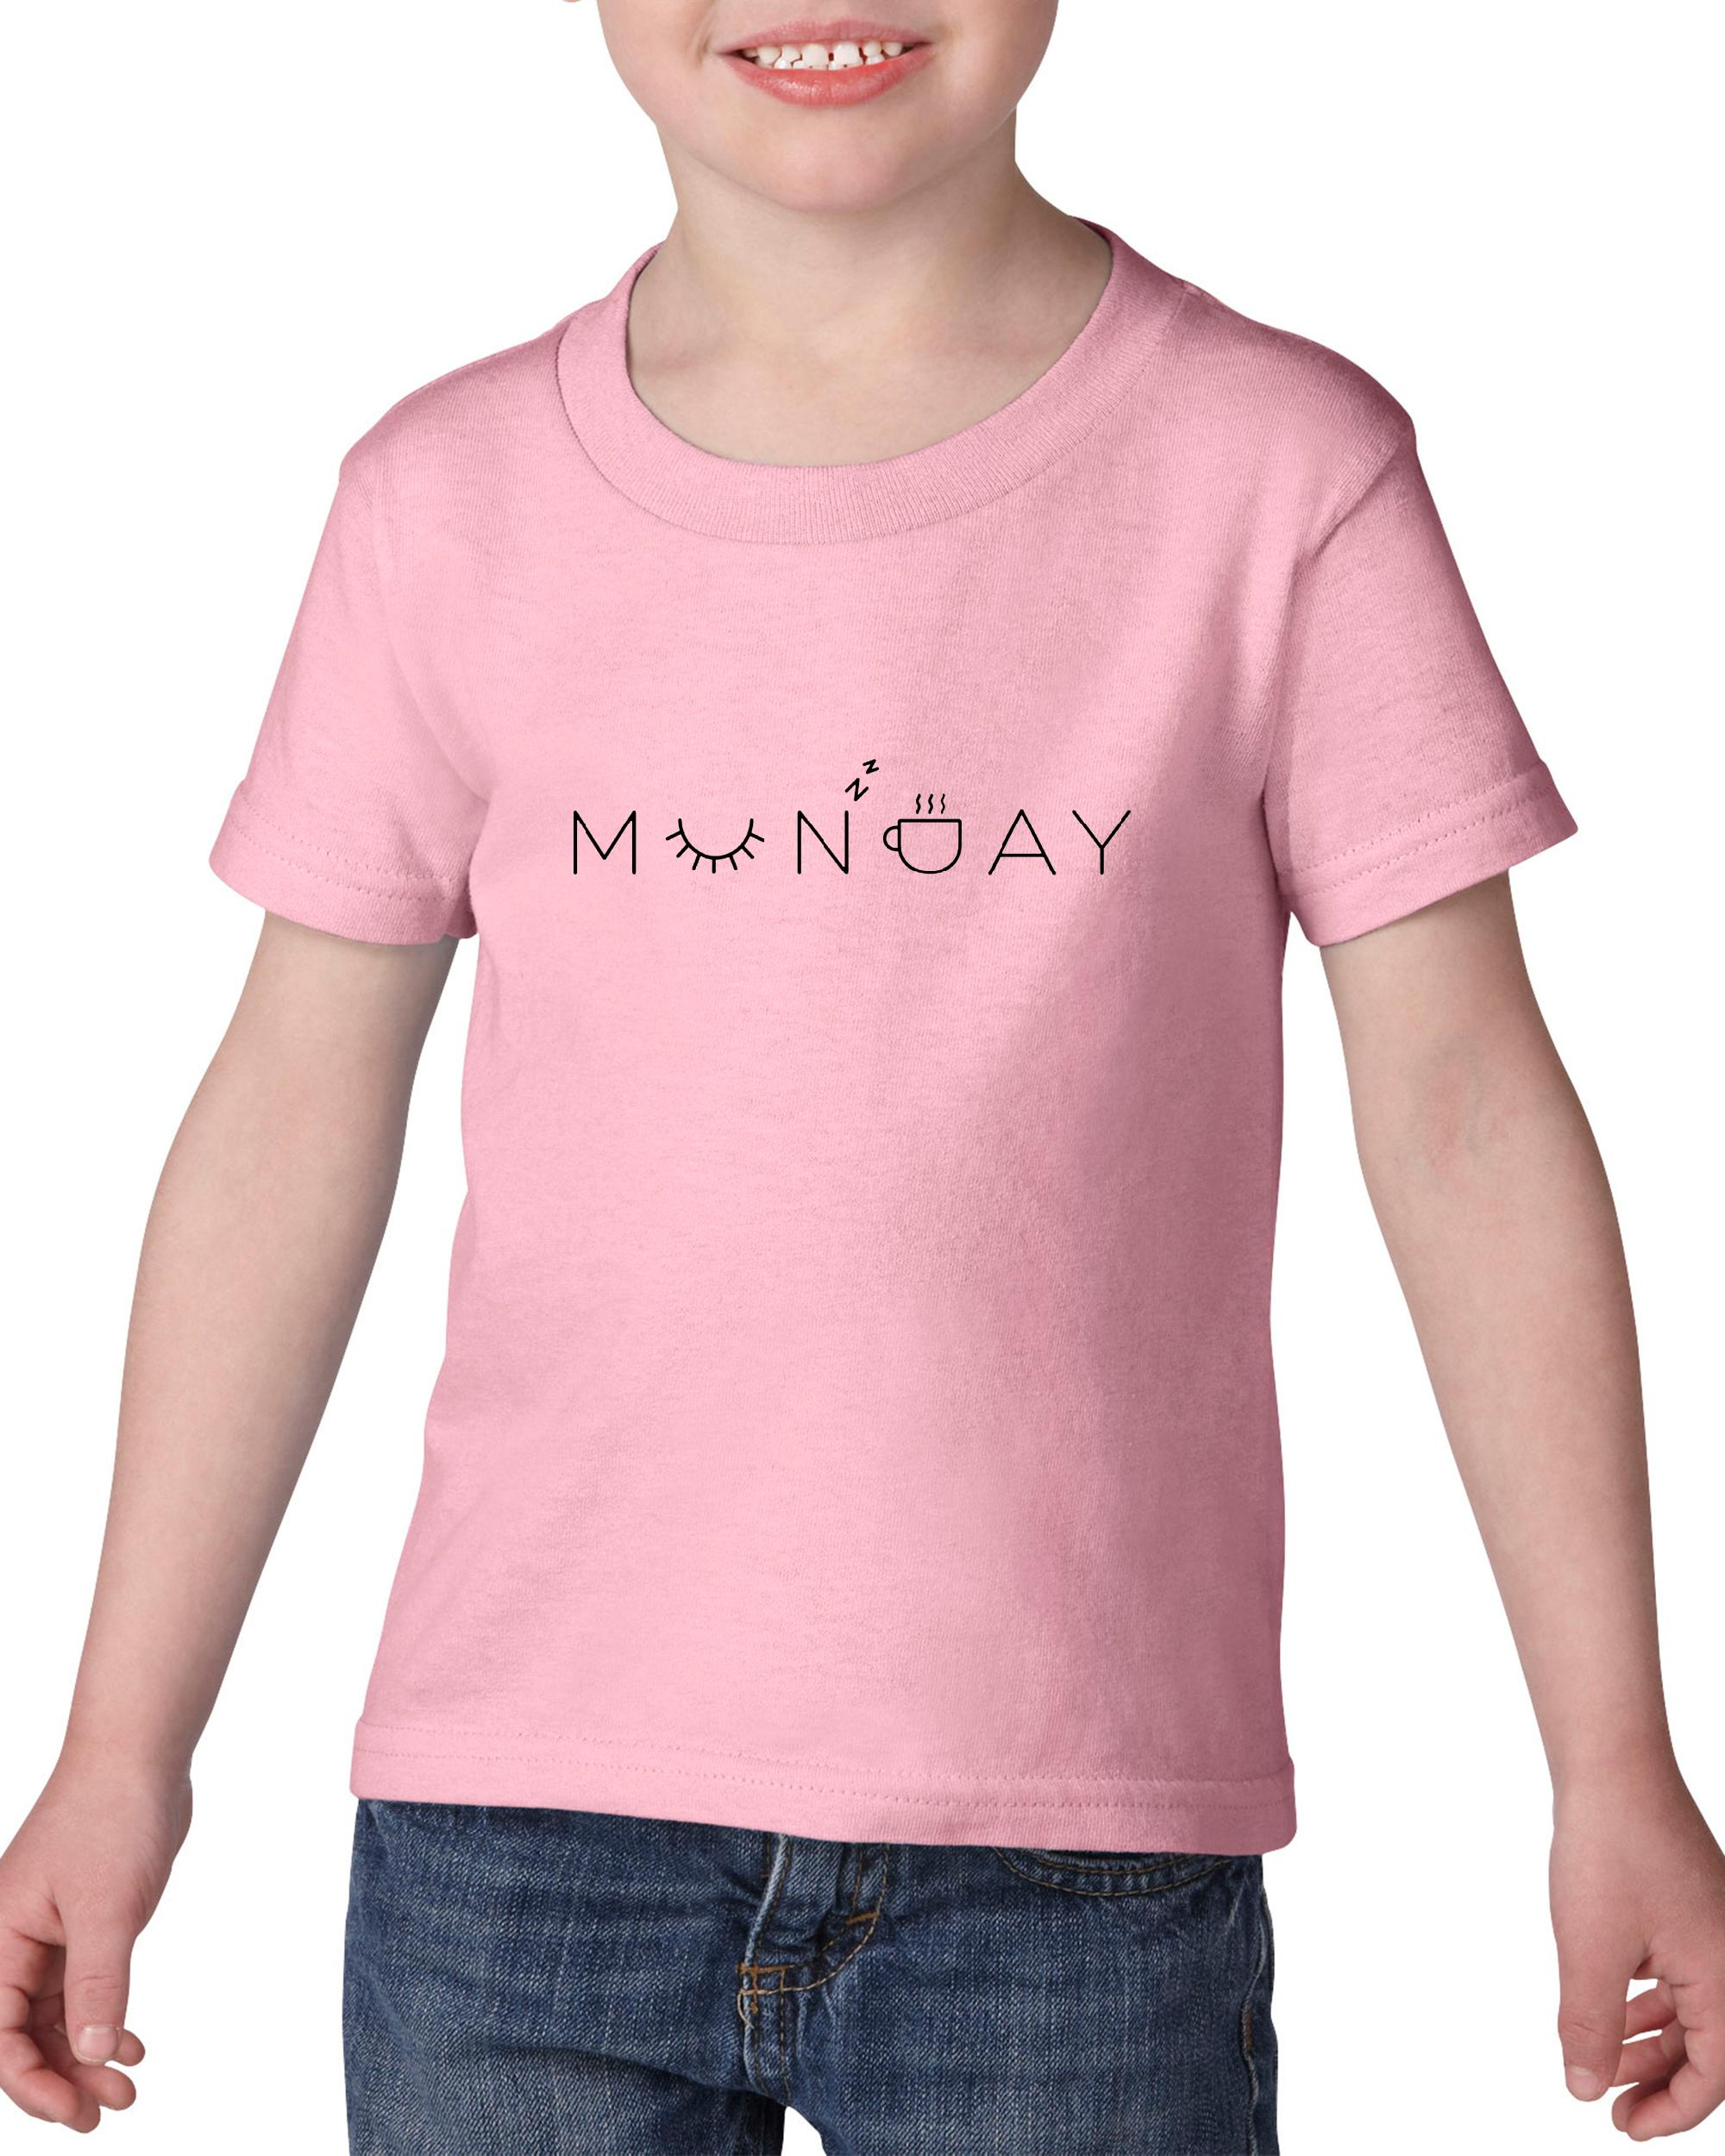 Artix Munday Zzz Coffee Please Gift for Coffee Lovers Birthday Xmas Match w Grinder Mug Heavy Cotton Toddler Kids T-Shirt Tee Clothing